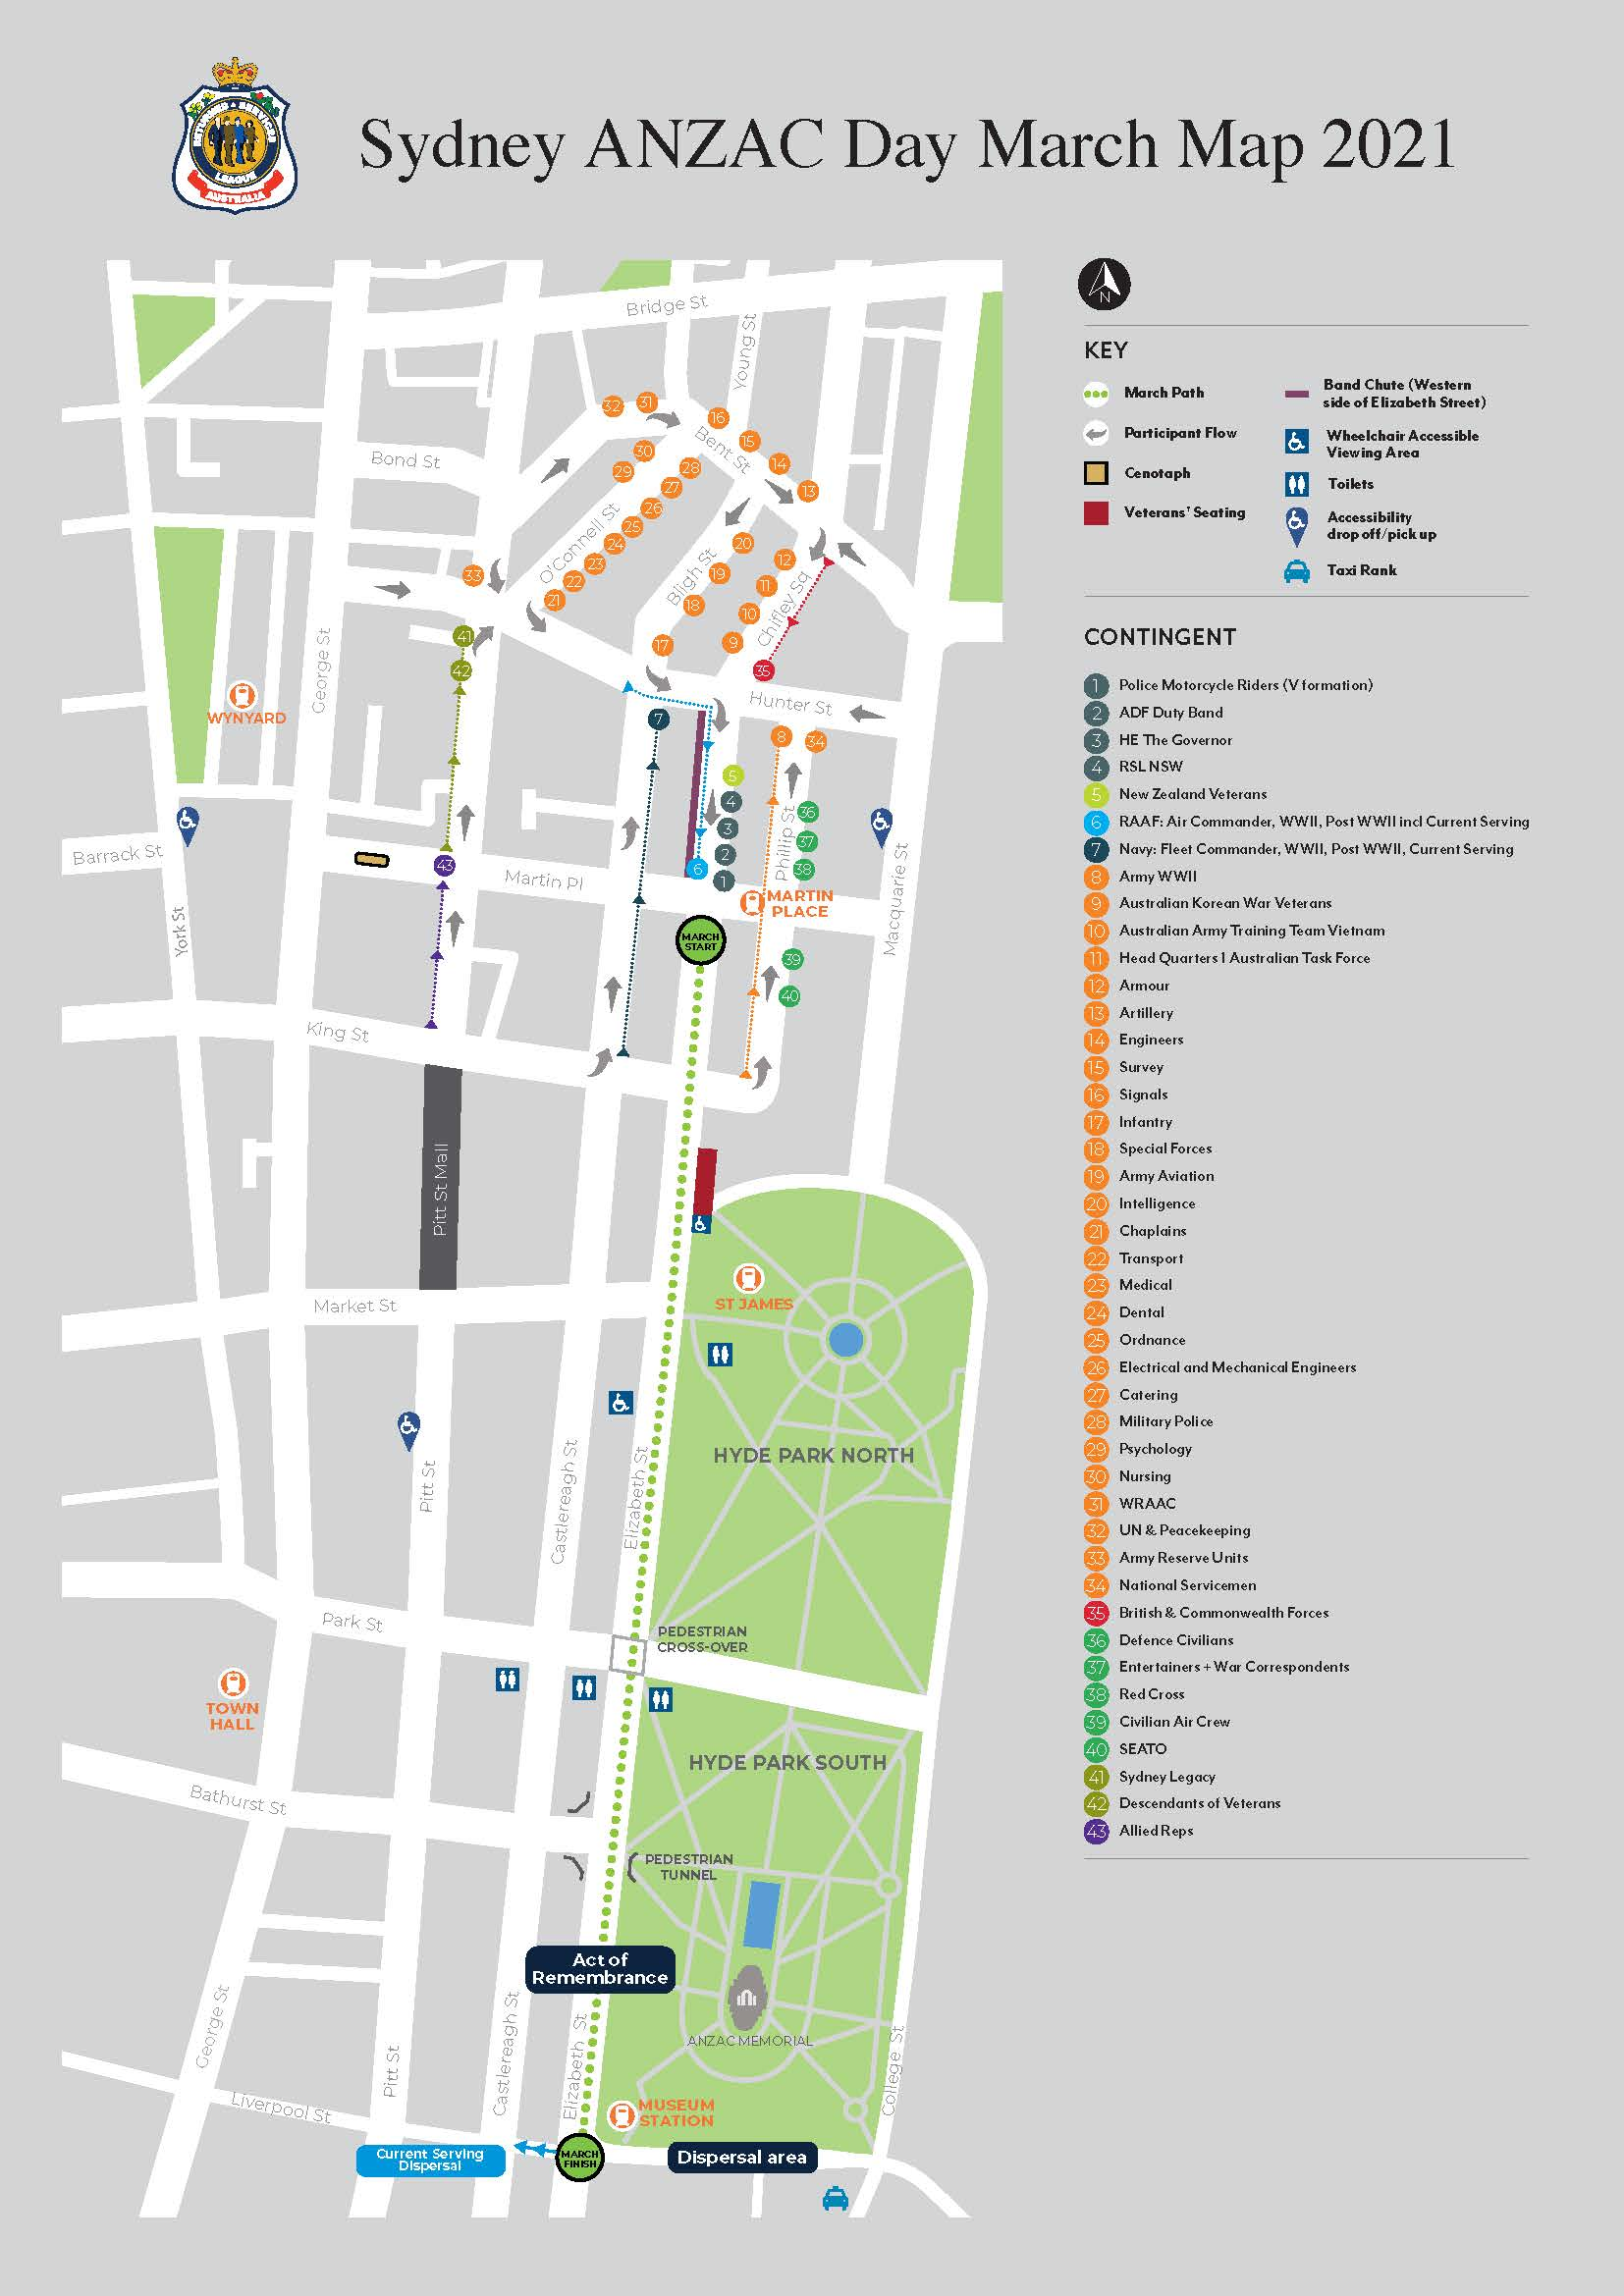 Map of starting point and march for ANNZAC Day March in Sydney 2021